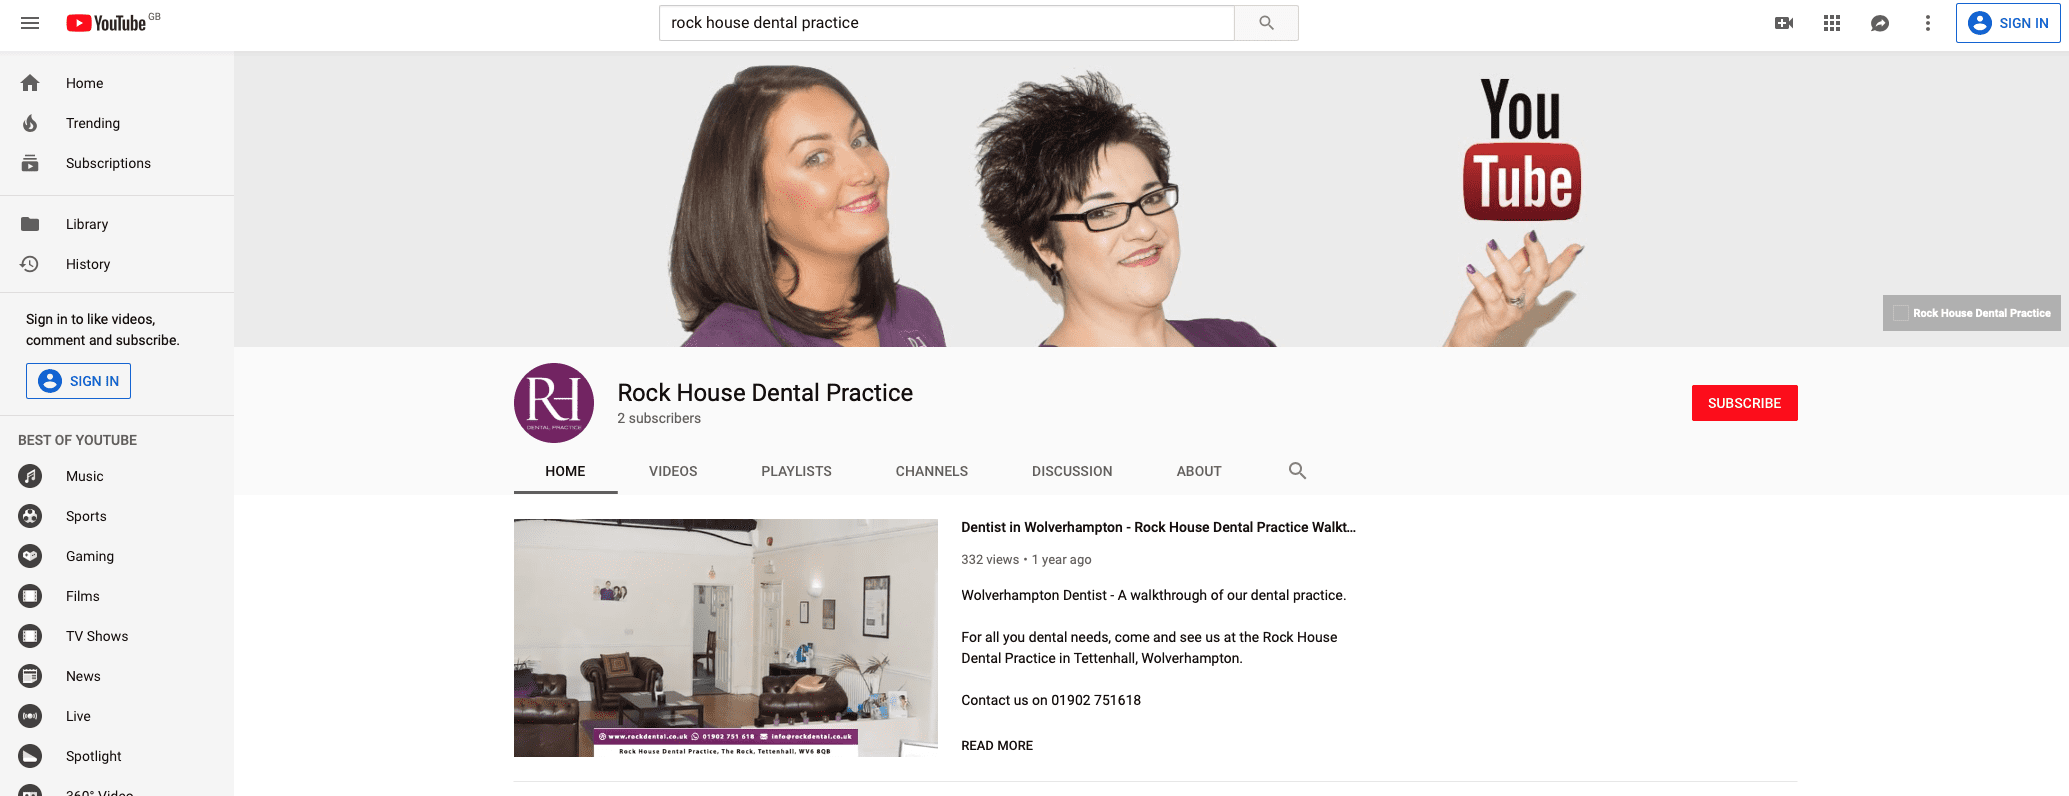 Rock House Dental Practice YouTube Page